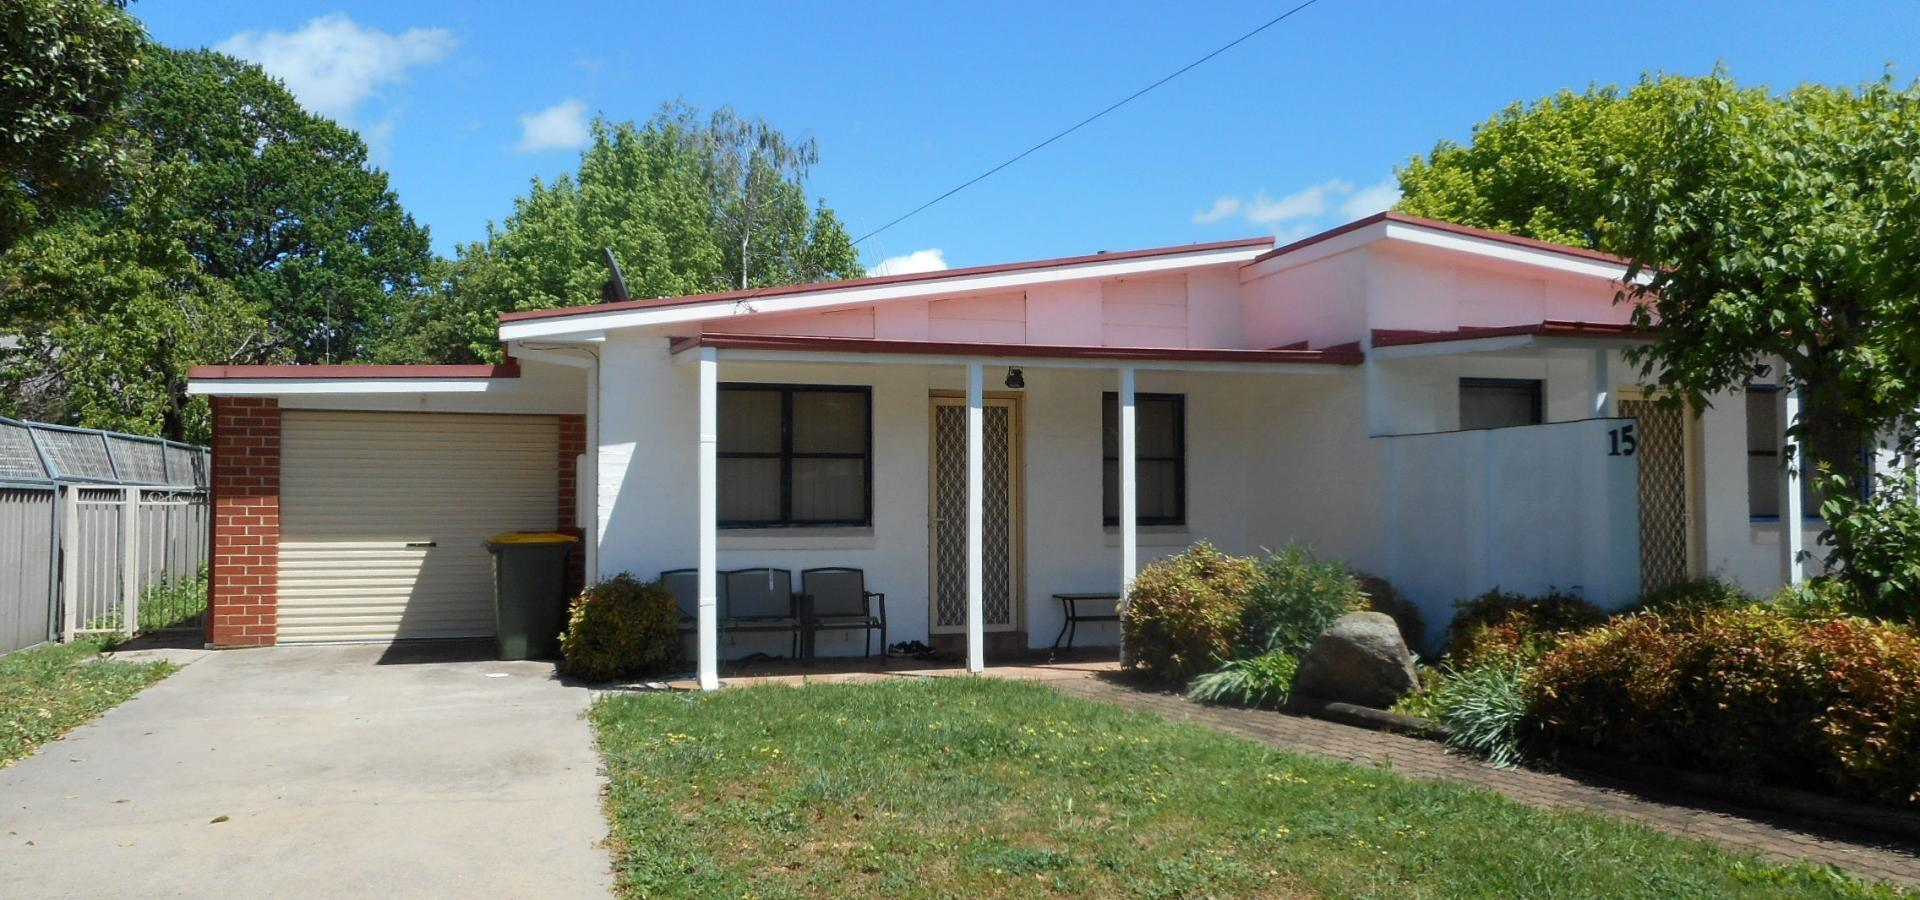 Ideal Opportunity Home and Income